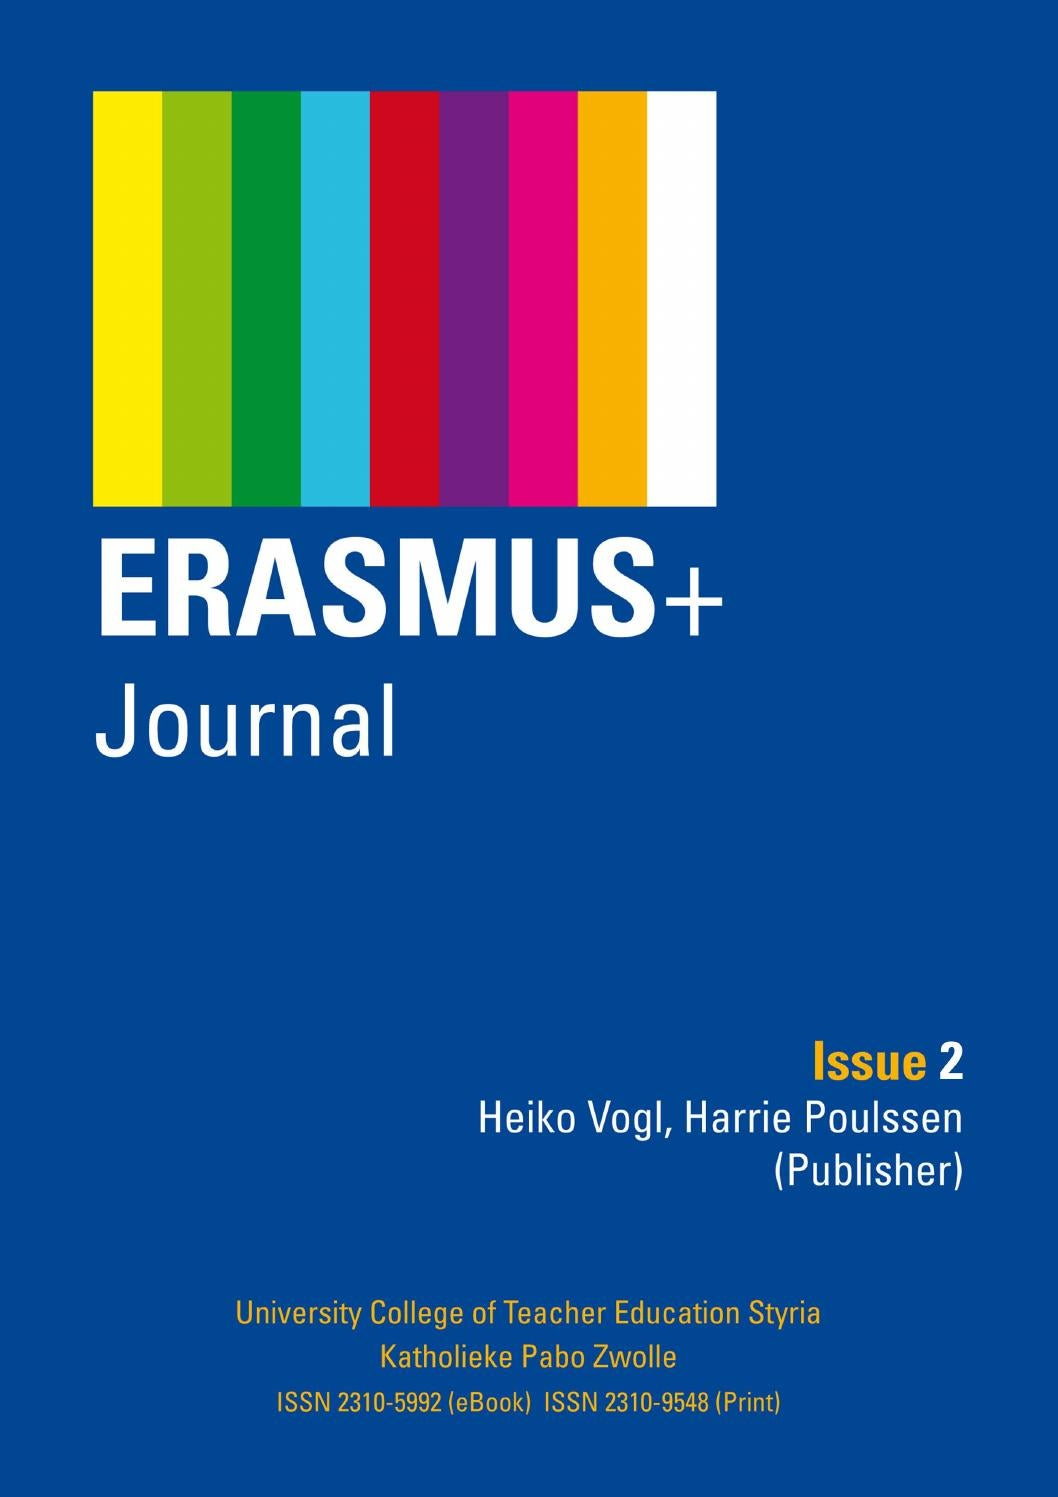 Erasmus+ Journal Issue 2 by Heiko Vogl - issuu